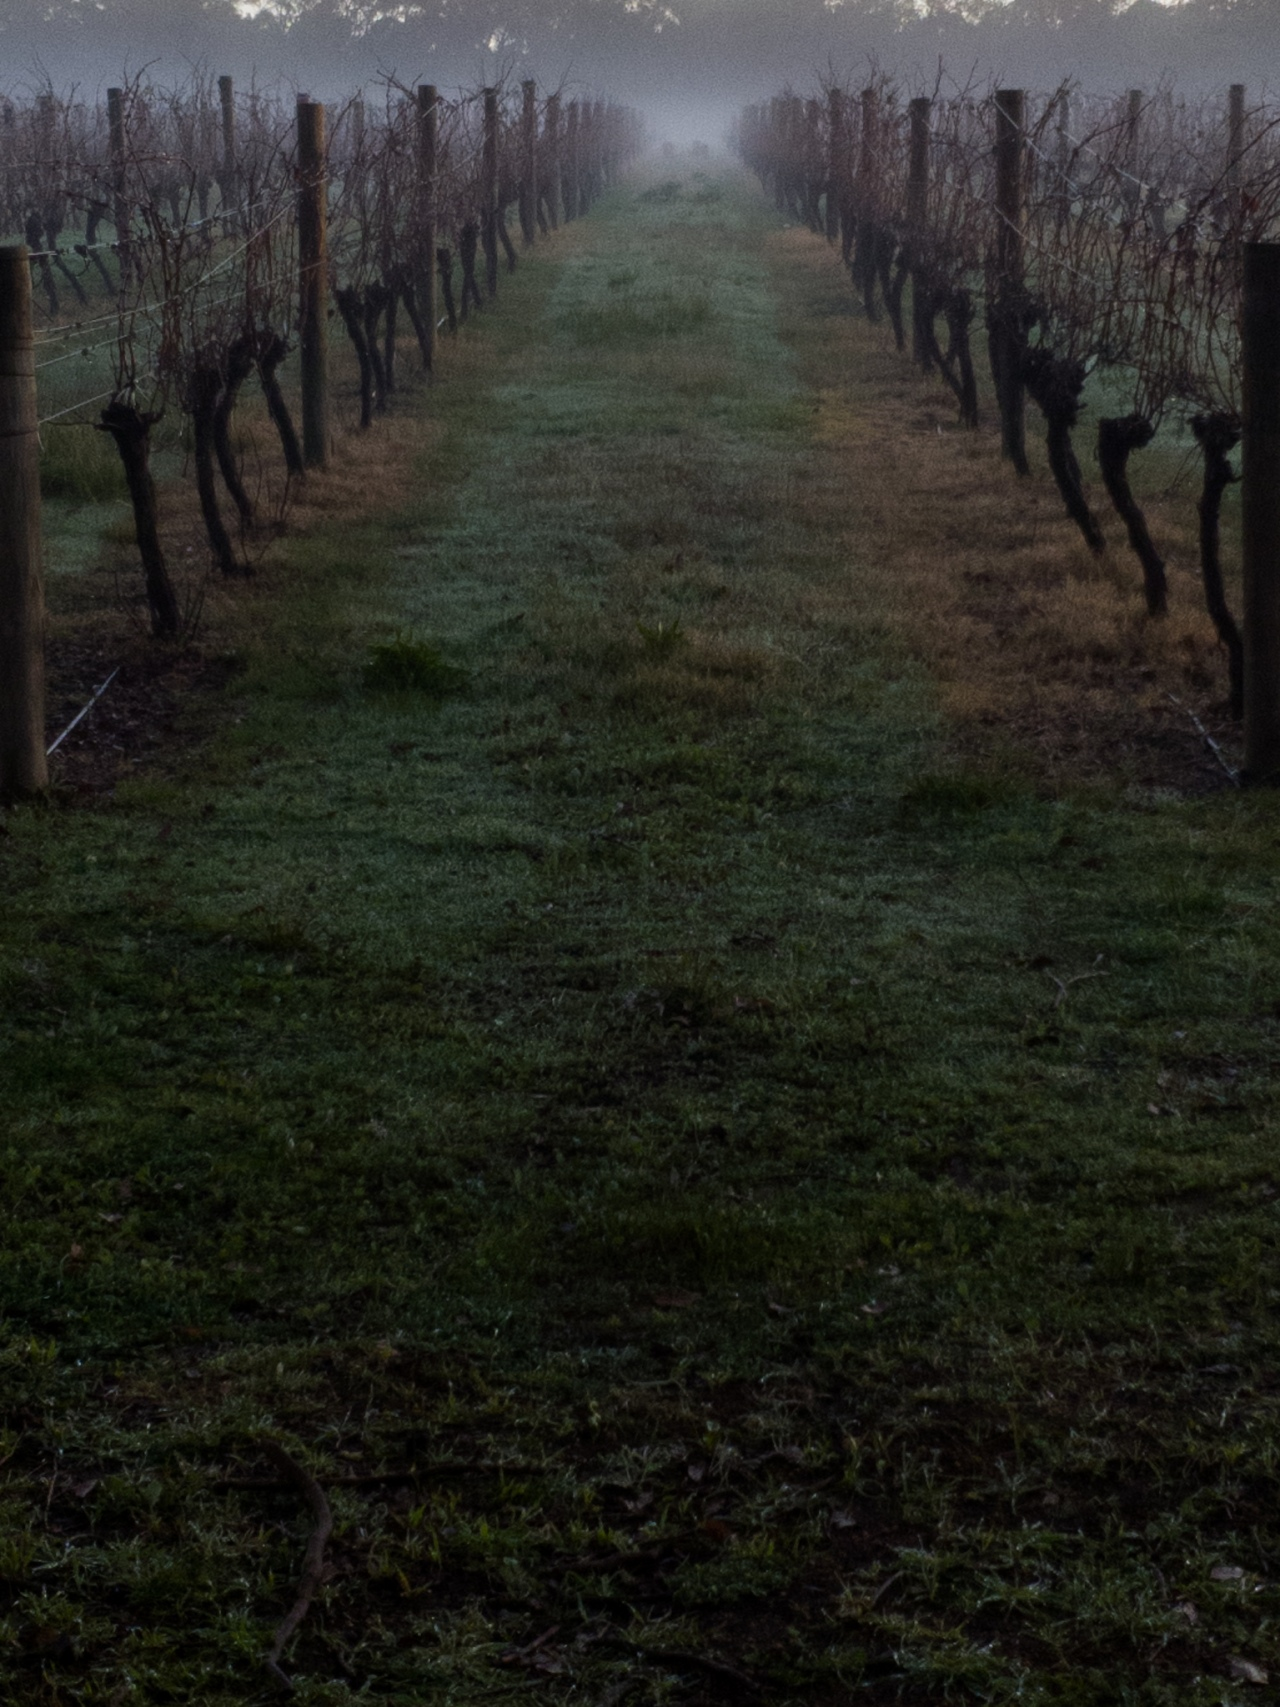 Early morning mist in the Vines